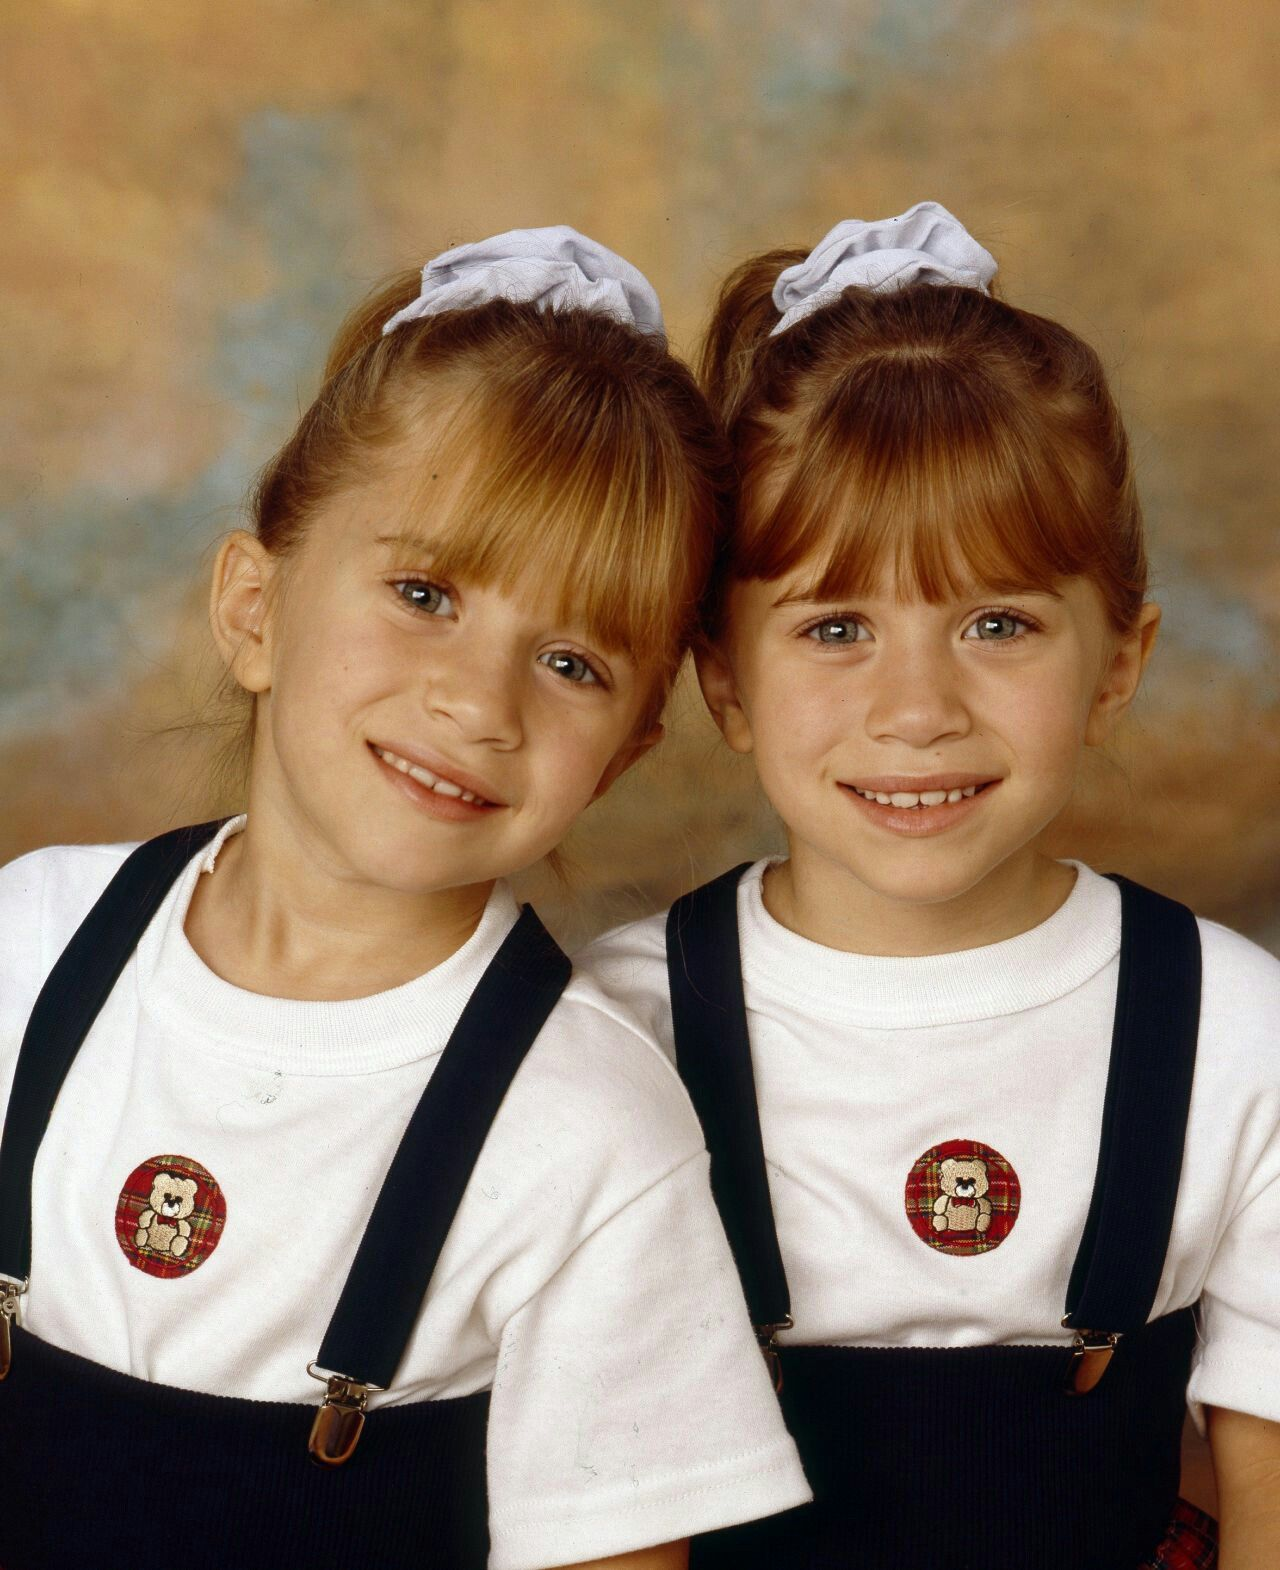 happy bday to twins mary kate olsen and ashley olsen | pinterest